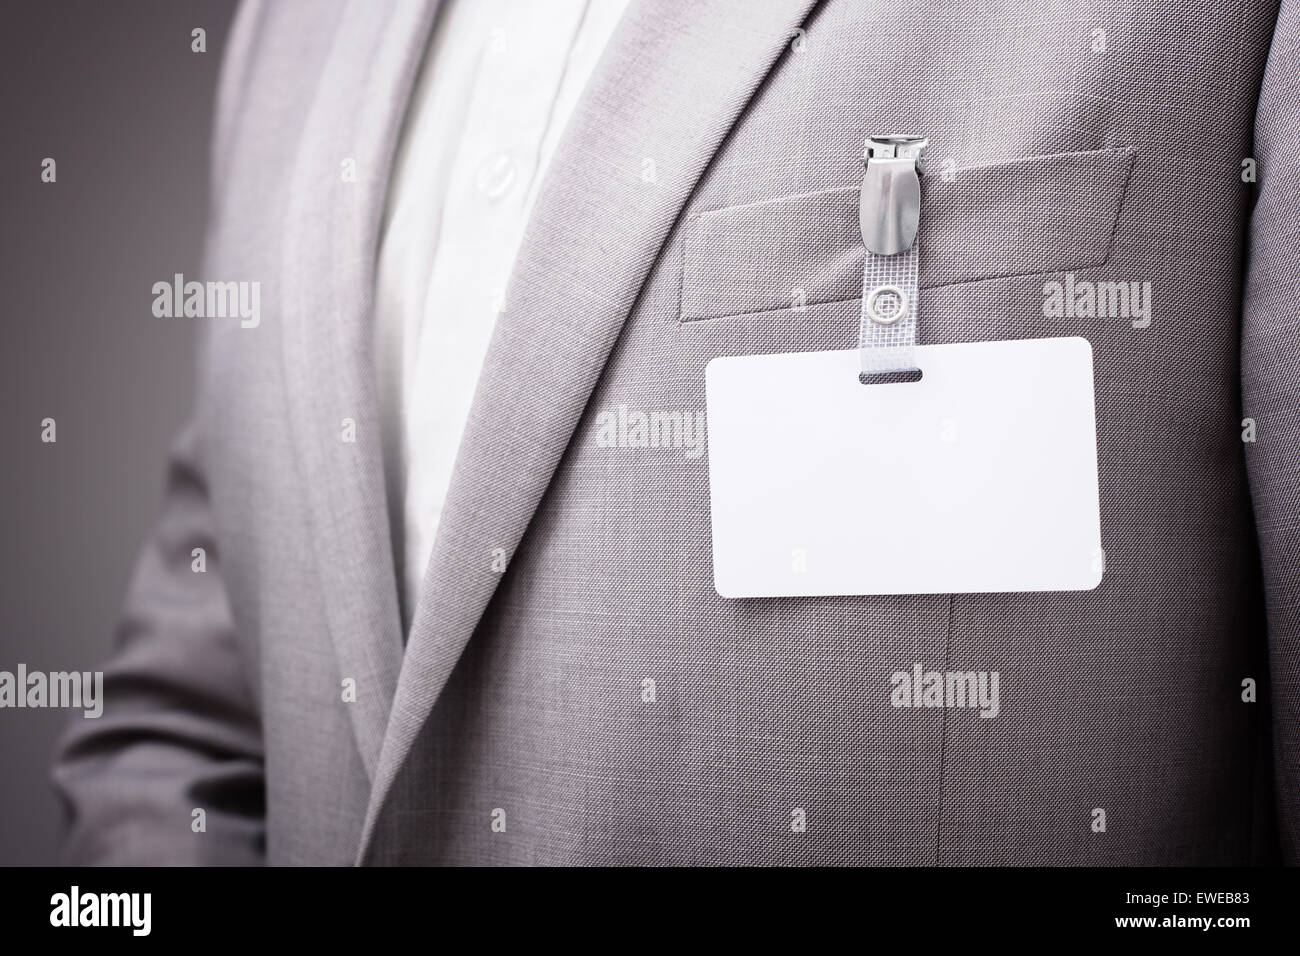 Businessman wearing blank name tag - Stock Image